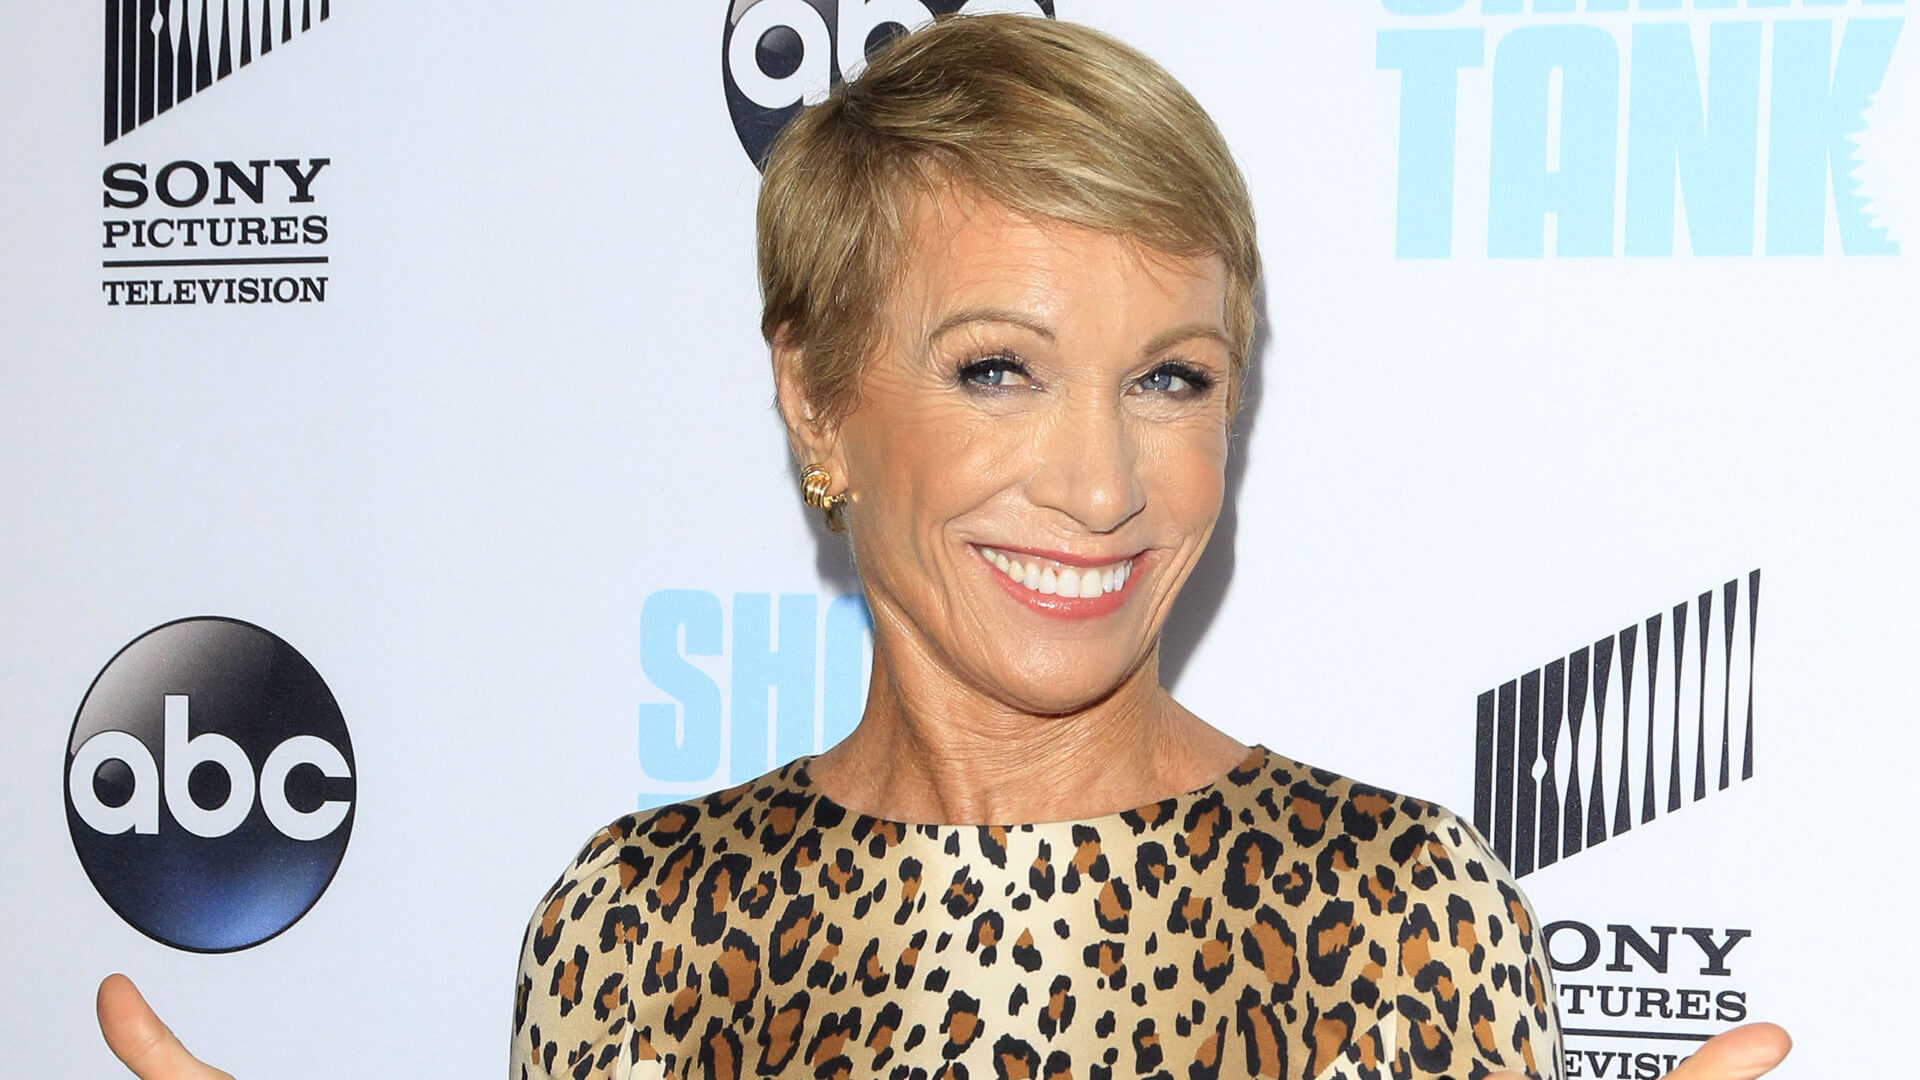 Barbara Corcoran Shark Tank How To Invest In Real Estate And Win